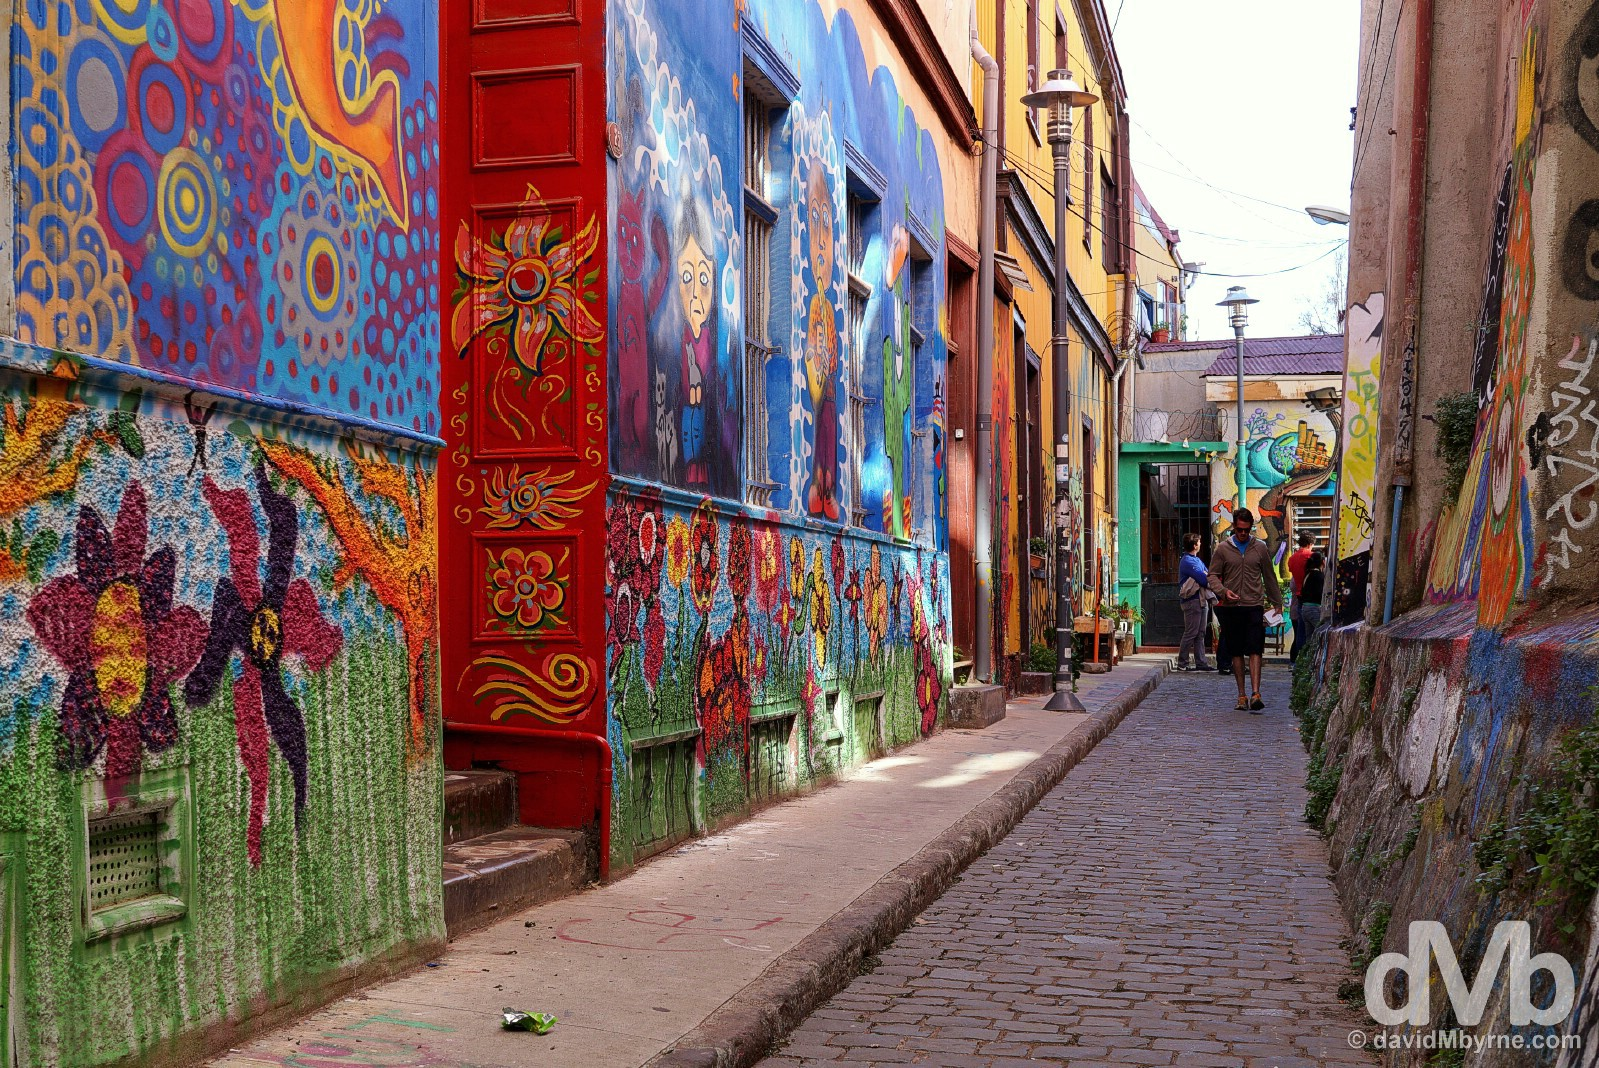 In the colourful, twisting lanes of Cerro Concepcion, Valparaiso, Chile. October 7, 2015.